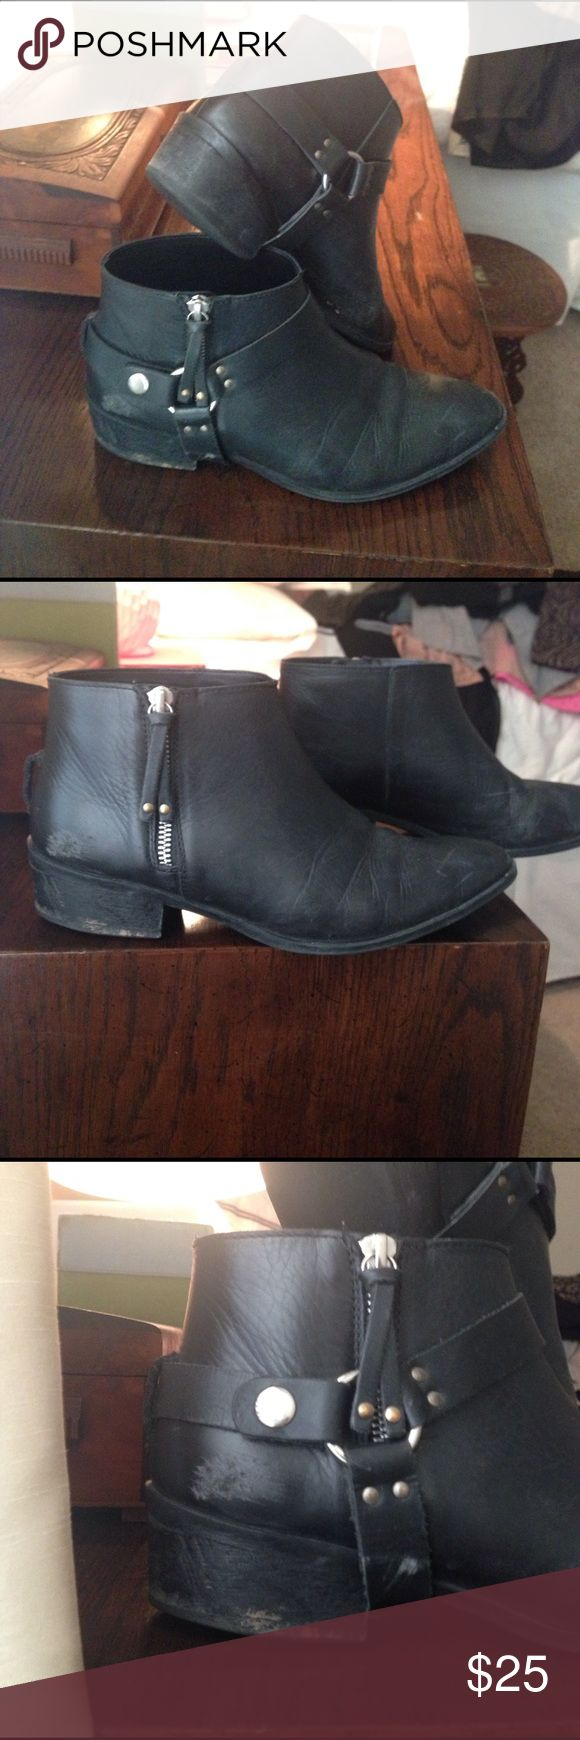 Urban Outfitters 'Deena & Ozzy' Moto Bootie 8.5 Distressing from previous wear present, but looks good on these ankle boots. Moto strap is detachable for a more streamlined look. Deena & Ozzy Shoes Ankle Boots & Booties